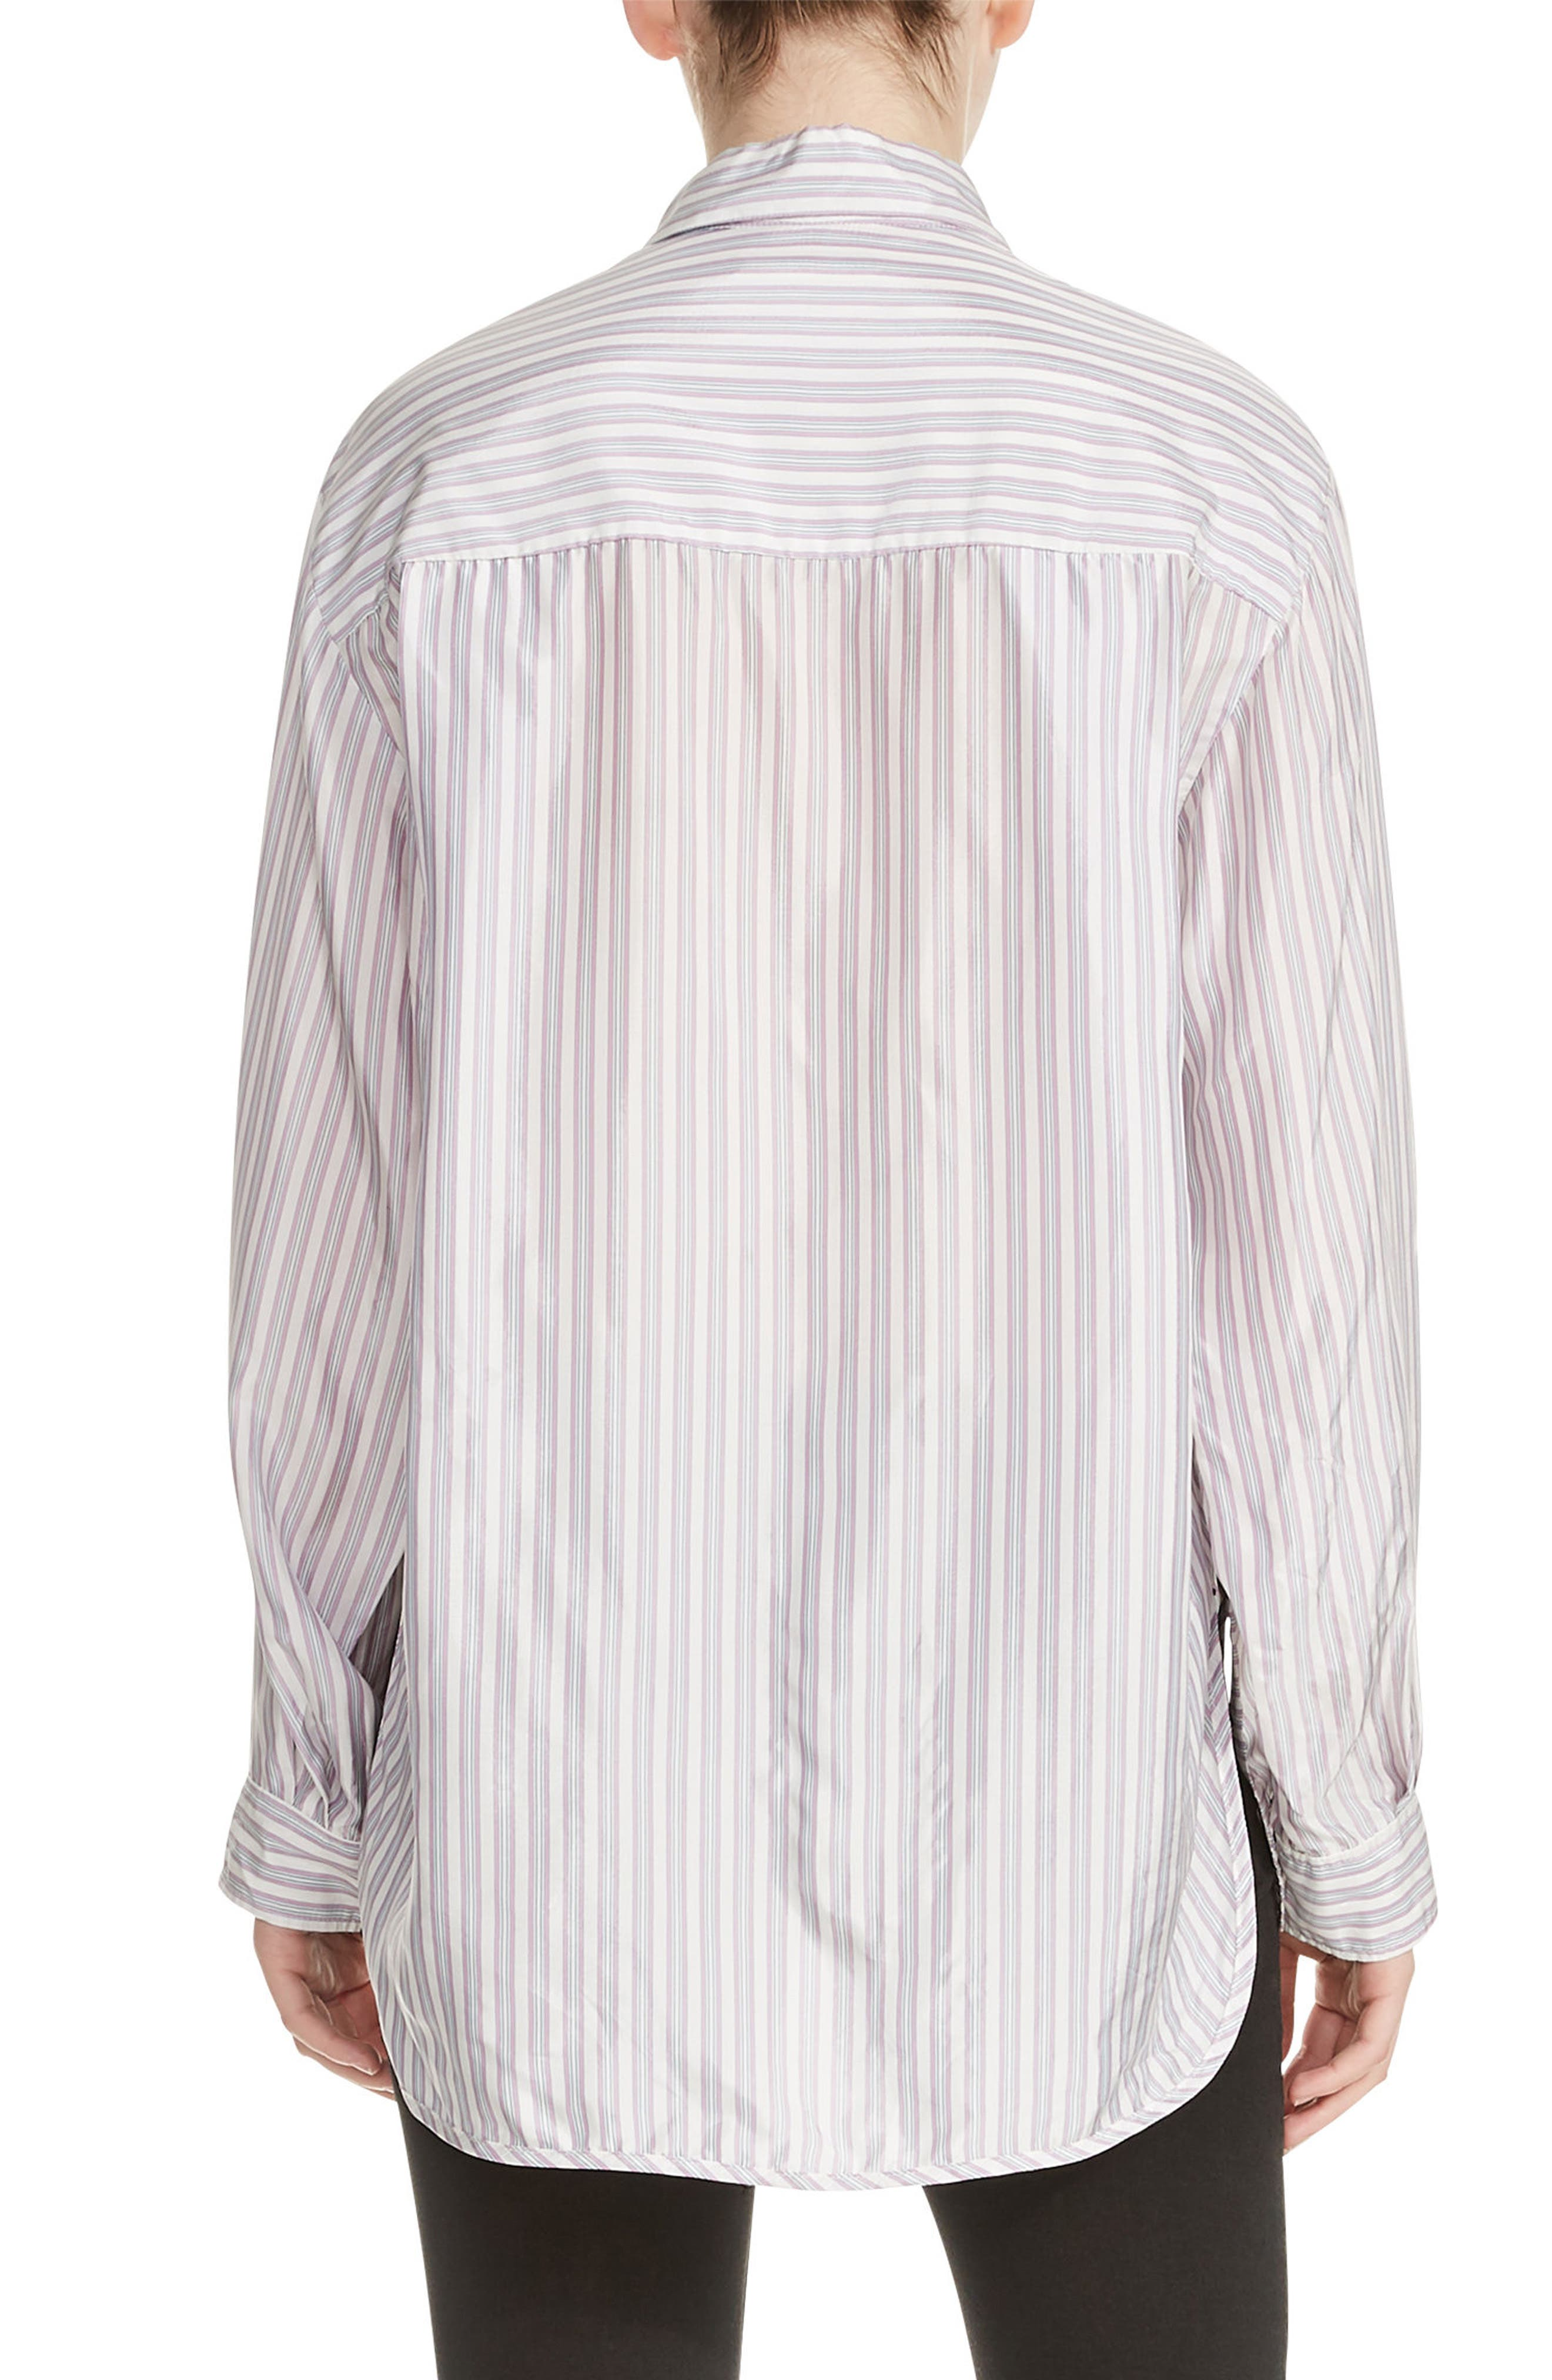 Celina High/Low Stripe Blouse,                             Alternate thumbnail 2, color,                             Stripe